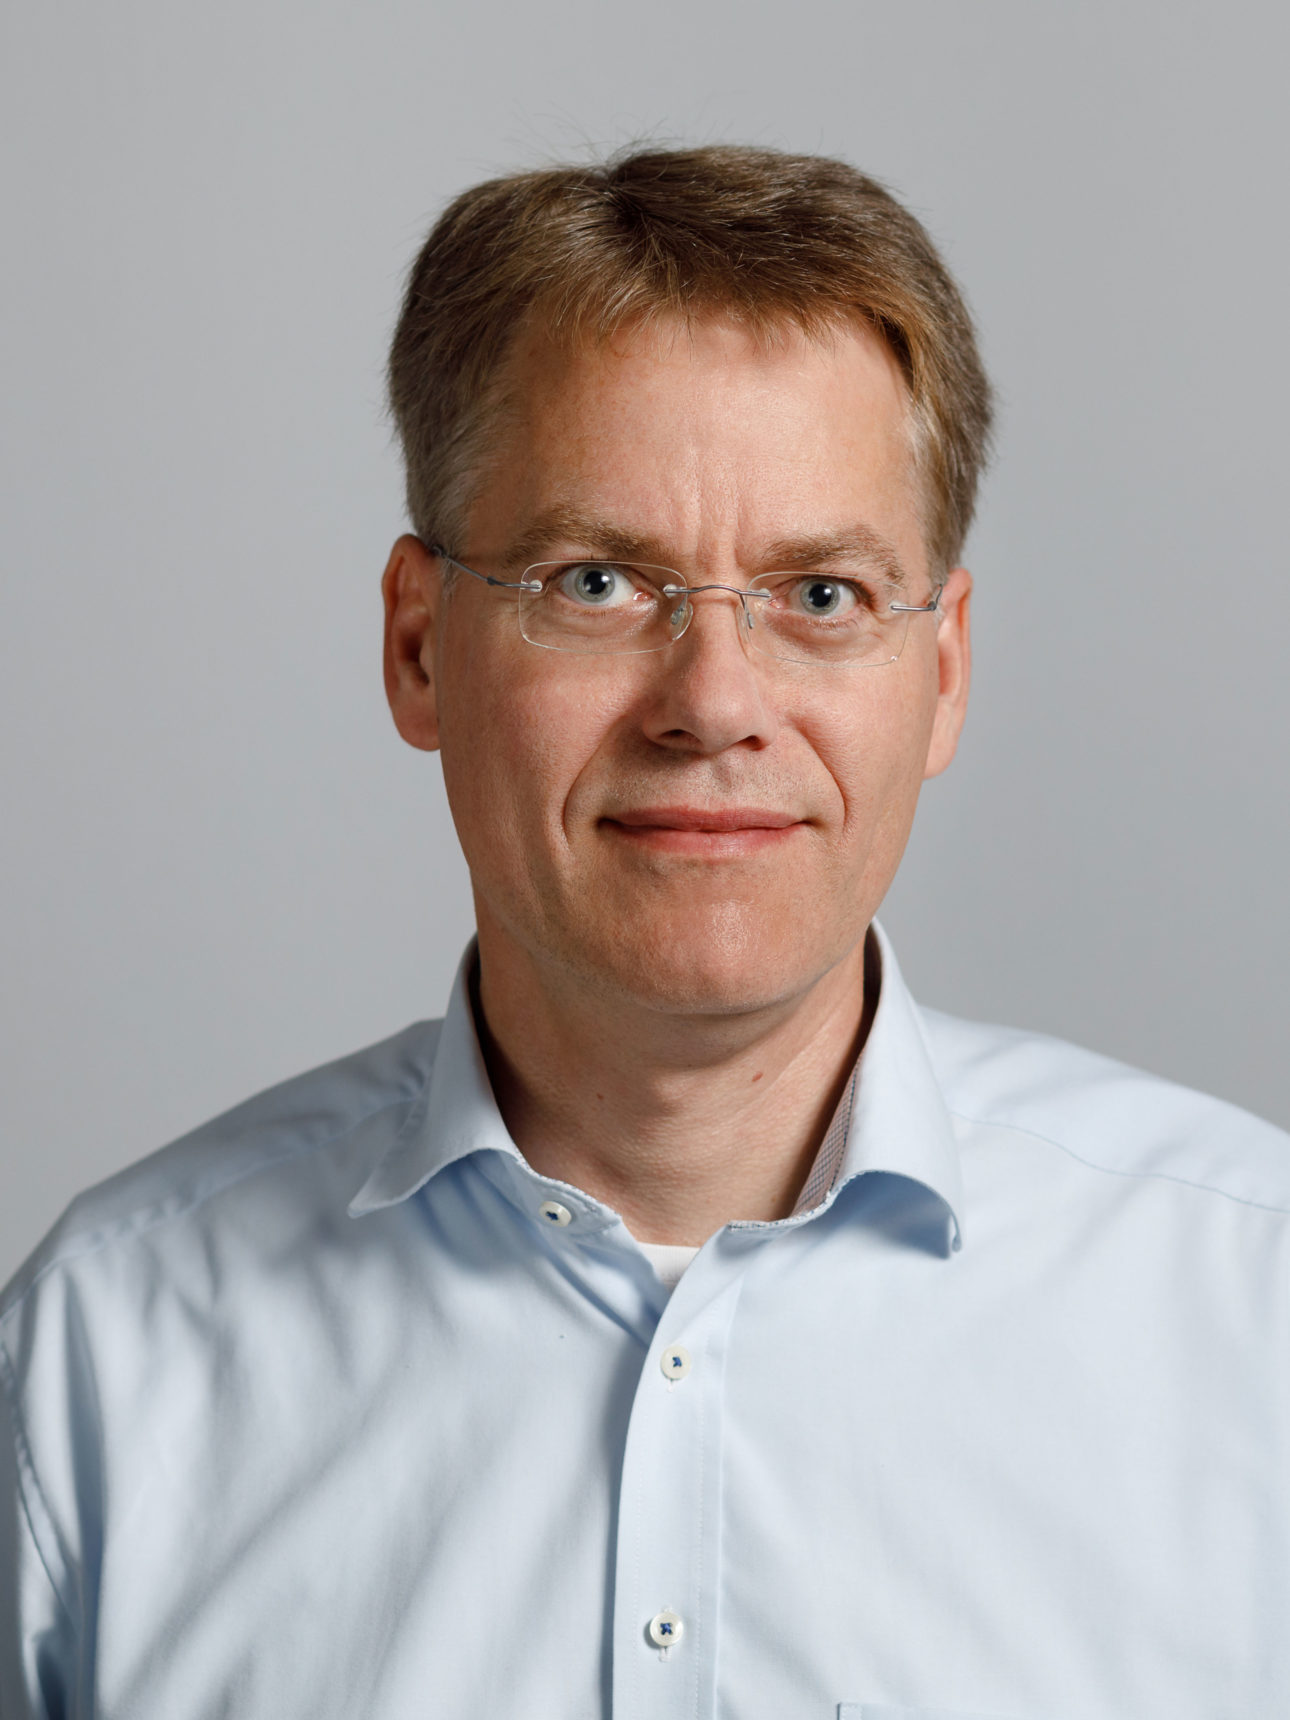 Portrait of a man with light colored eyes, wearing a pale blue button-down shirt, rimless glasses, smiling while looking straight into the camera.